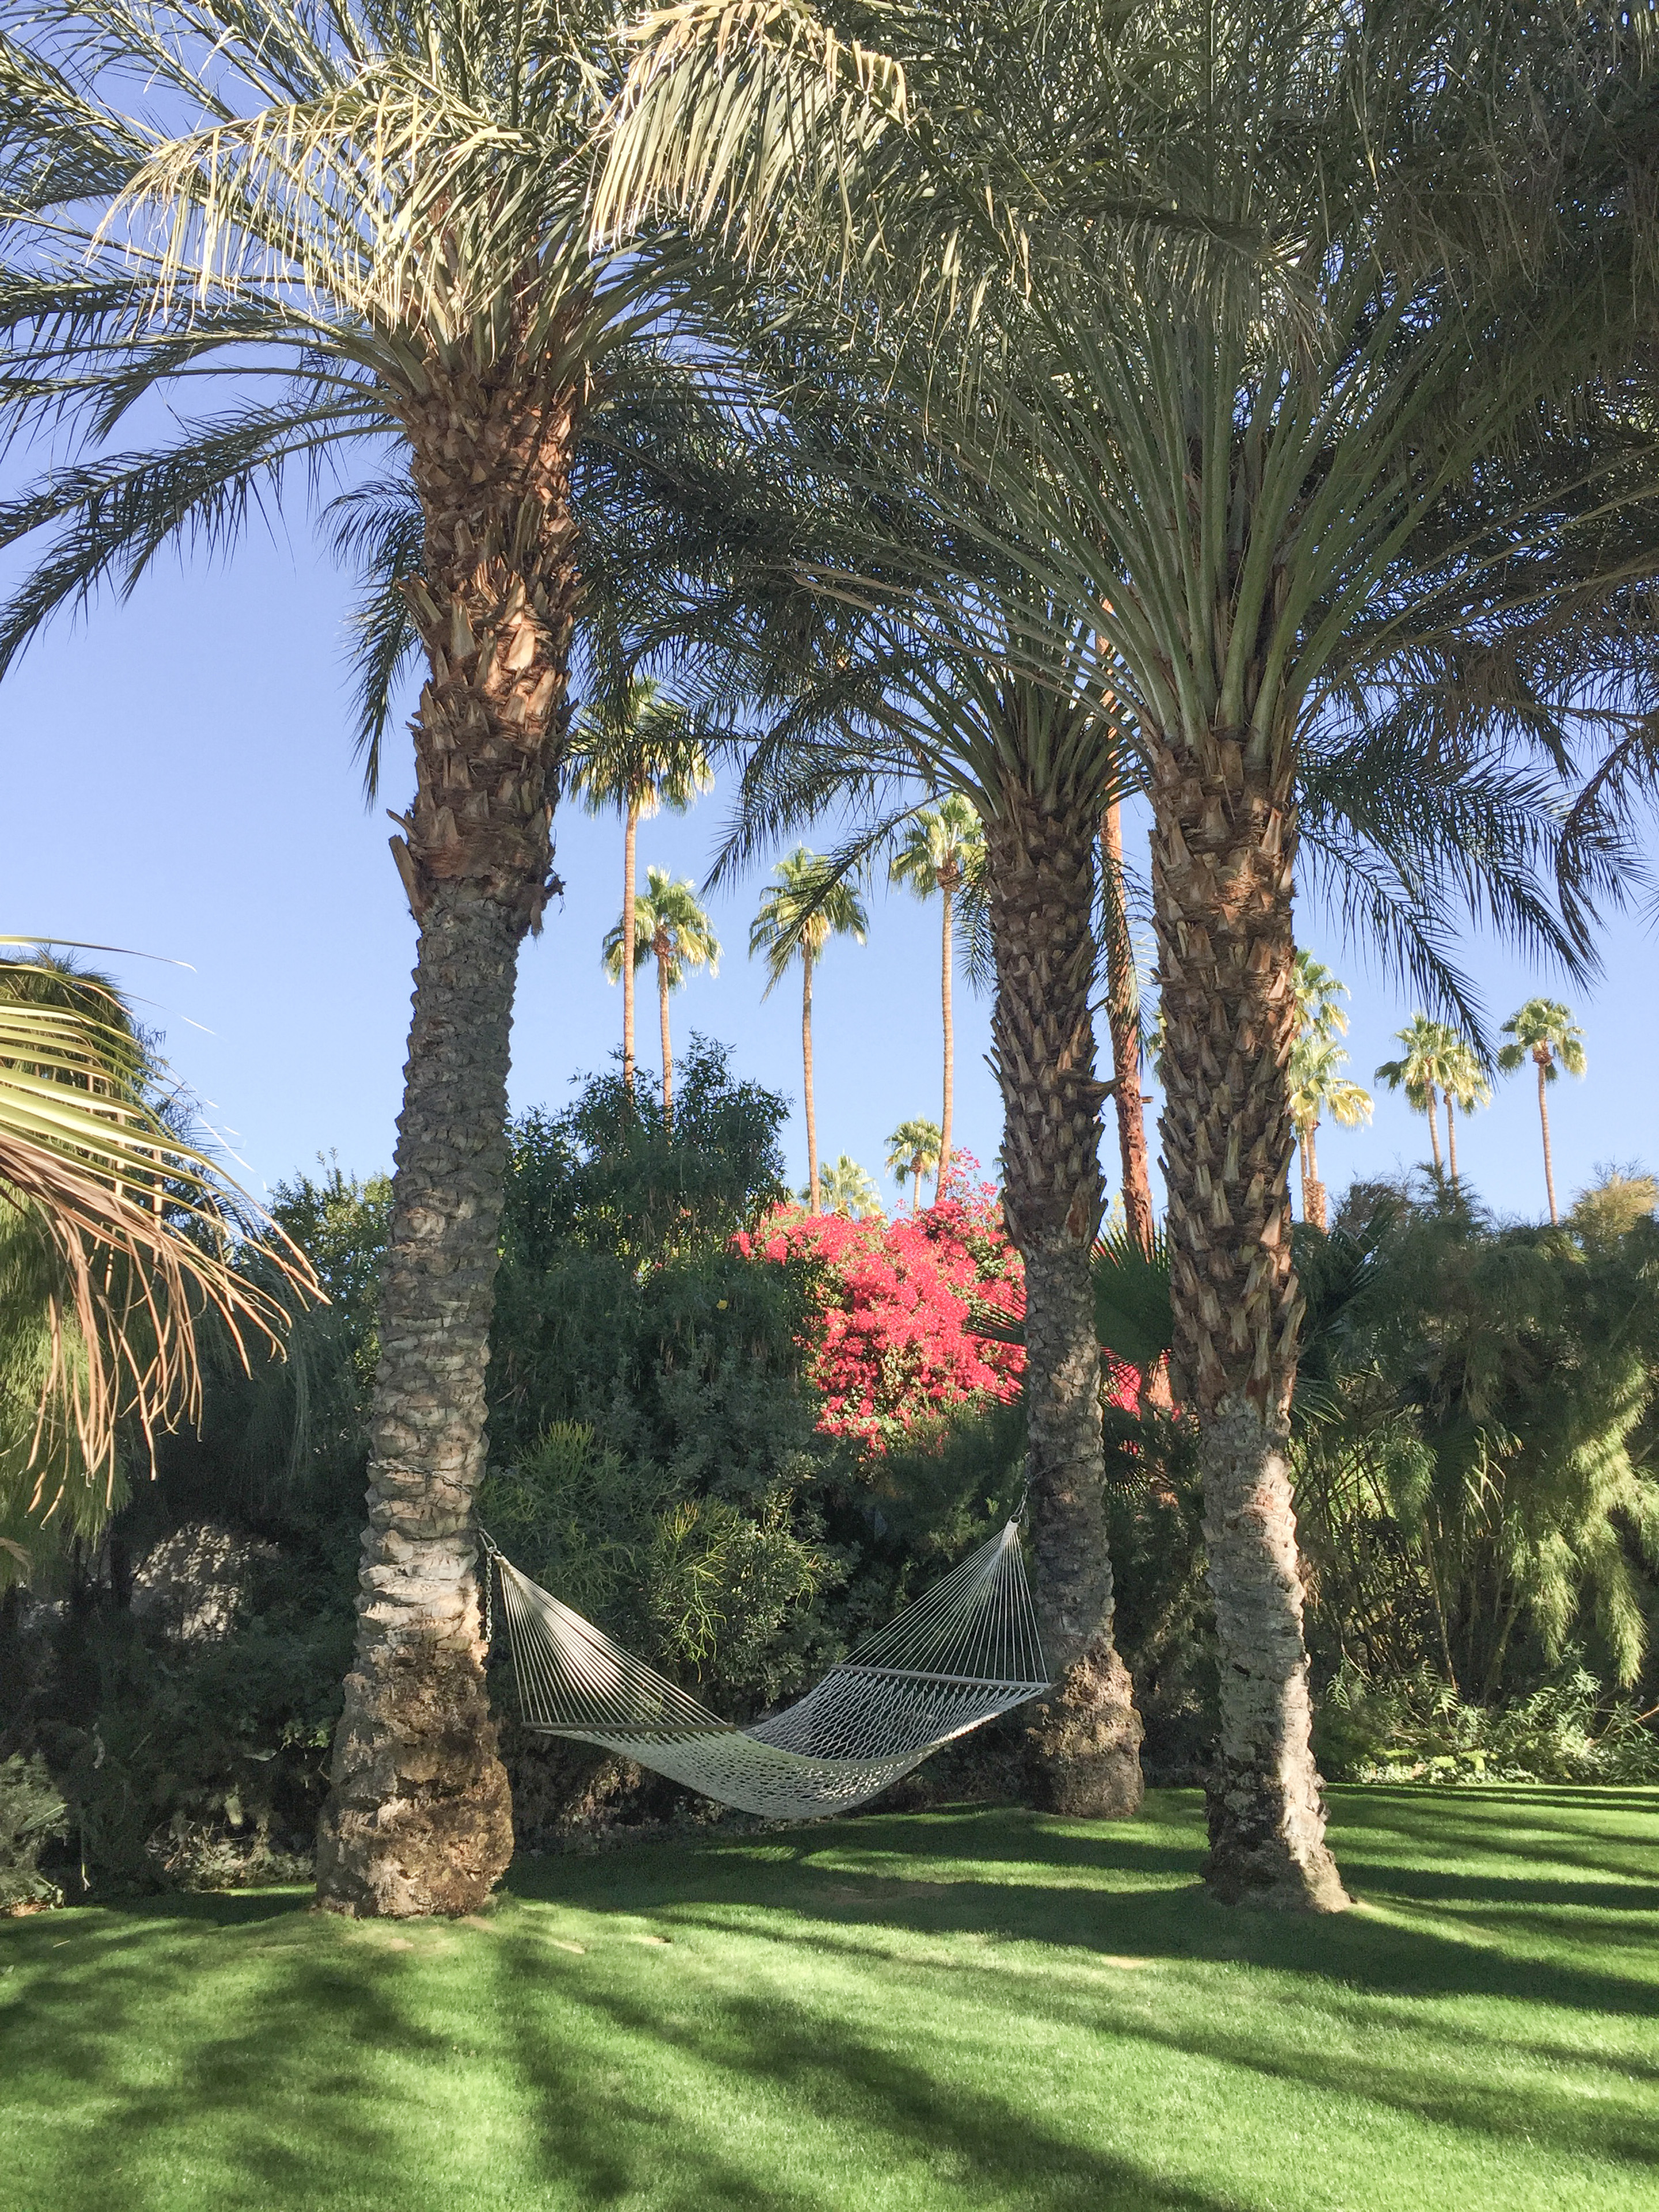 5 #CaliforniaDreamBig: Palm Springs travel tips.